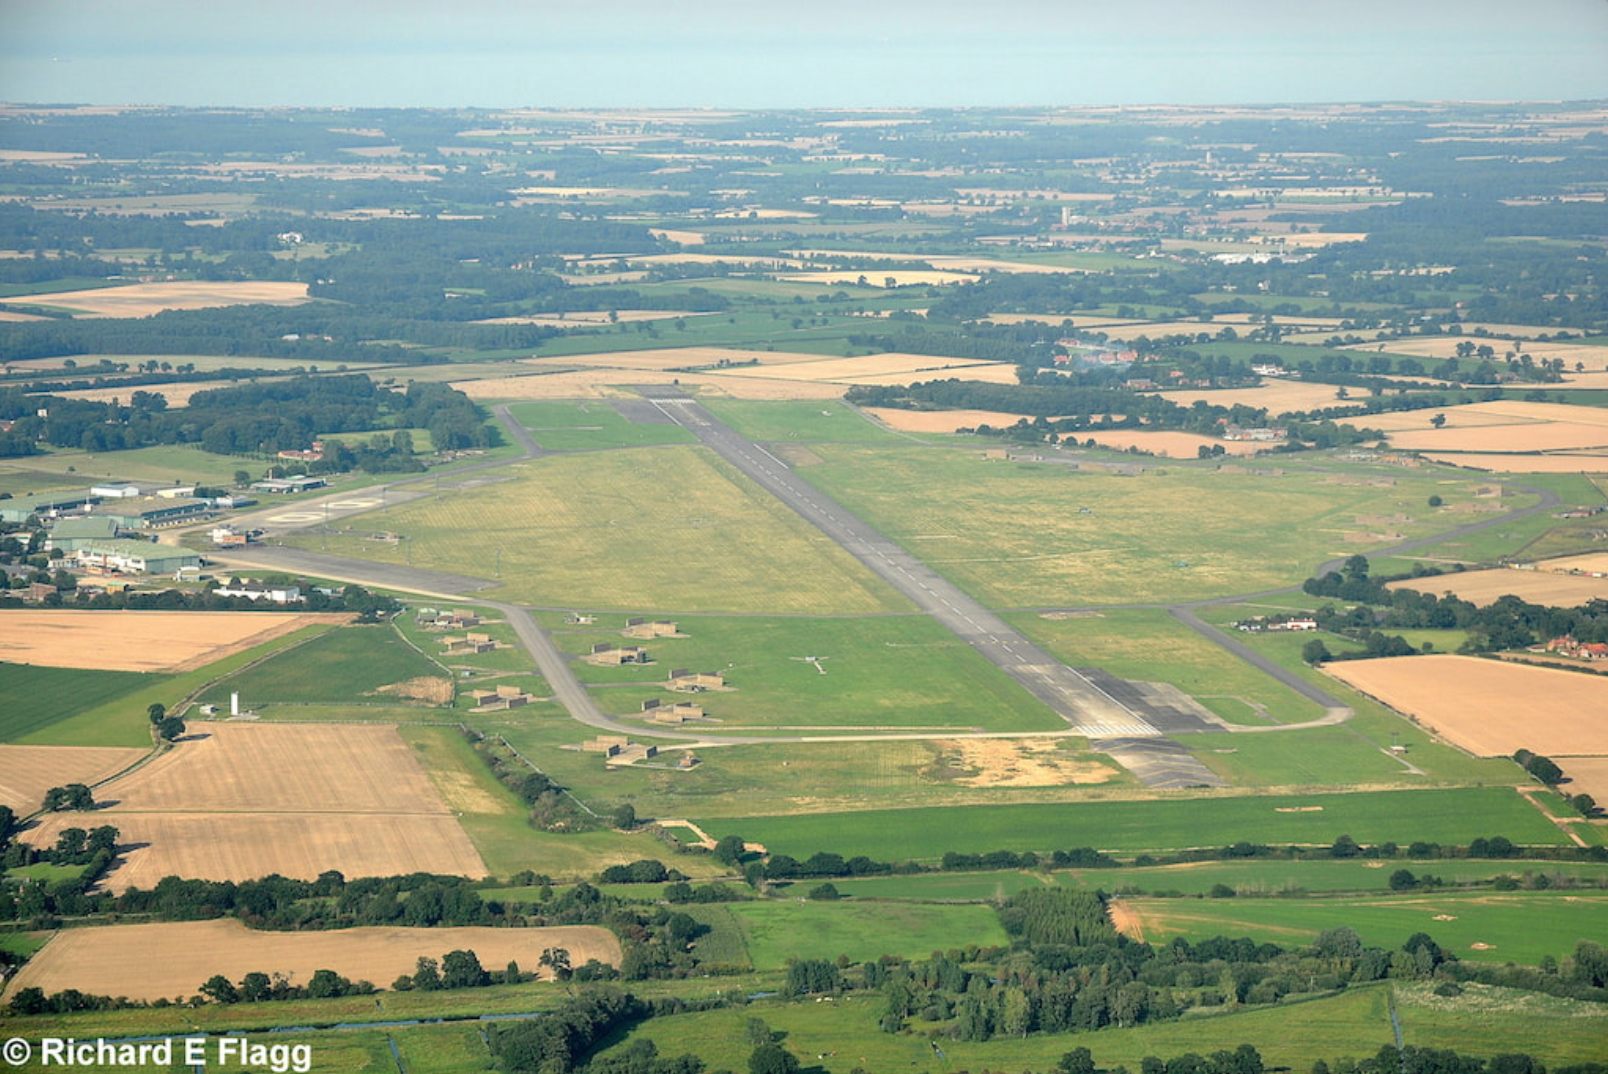 014Aerial View of RAF Coltishall - 1 September 2010.png